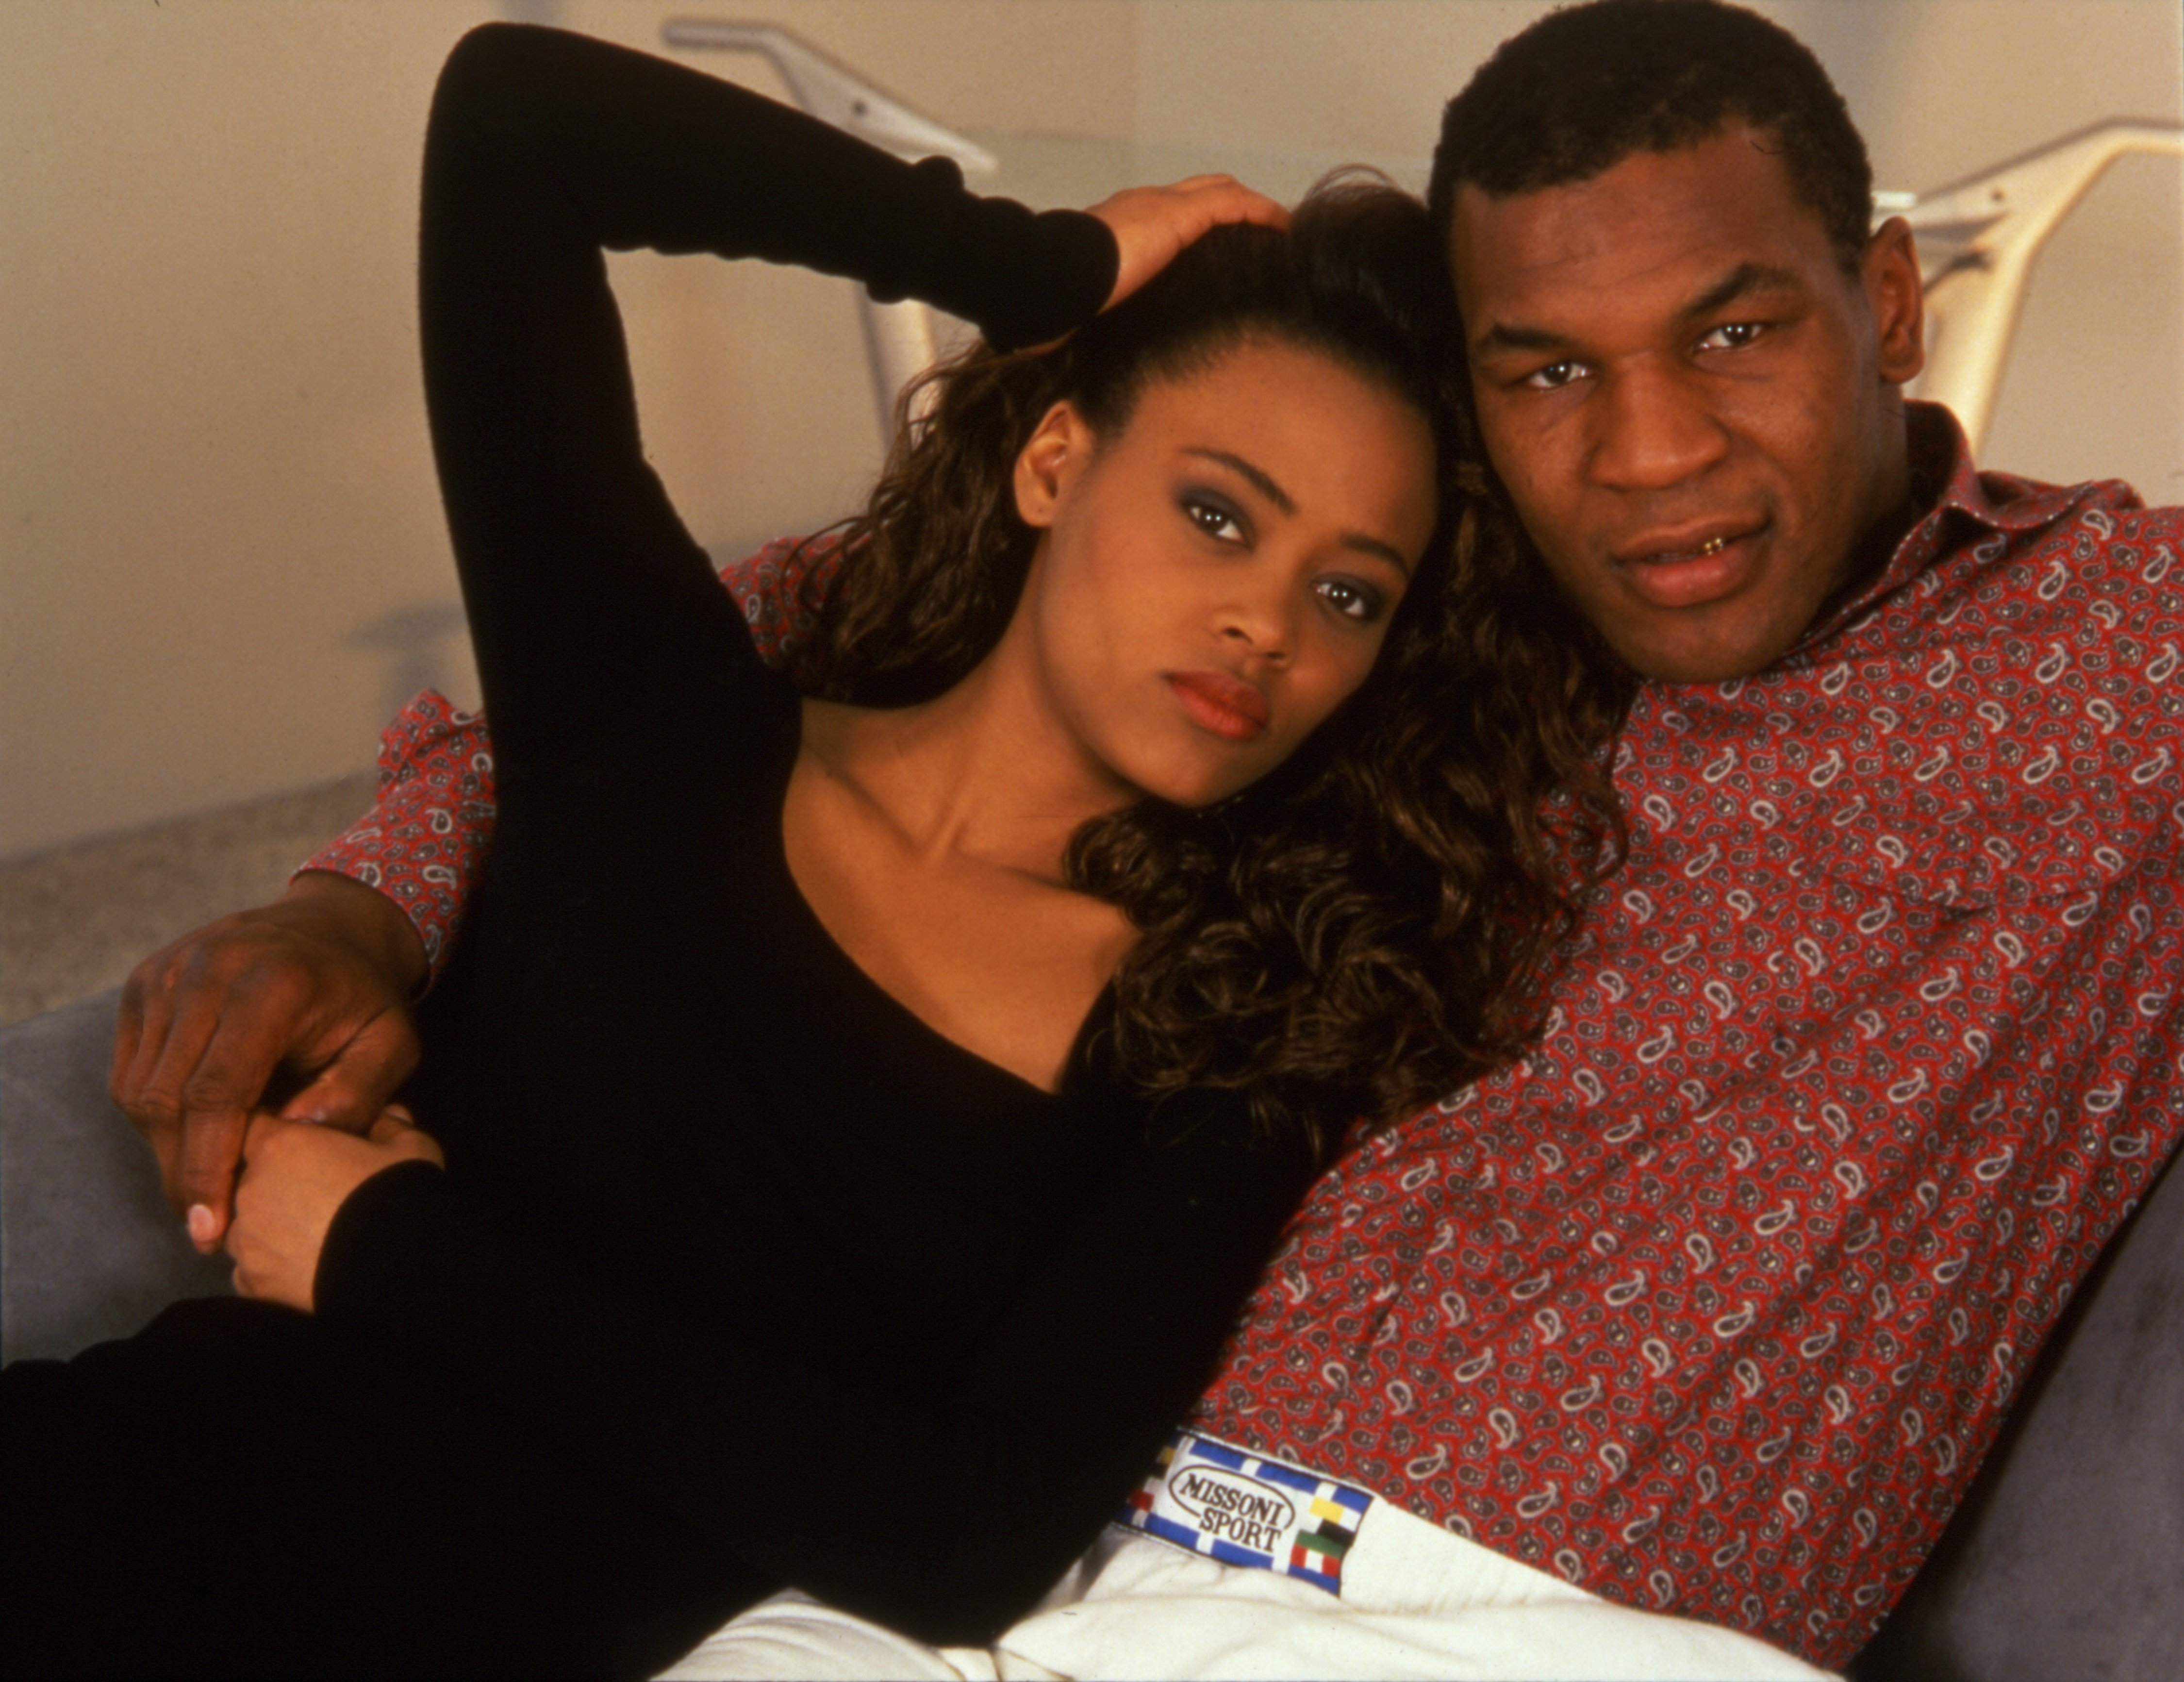 Mike Tyson and his wife, actress Robin Givens, in their new home, Los Angeles, California, May 1988 | Photo: Getty Images